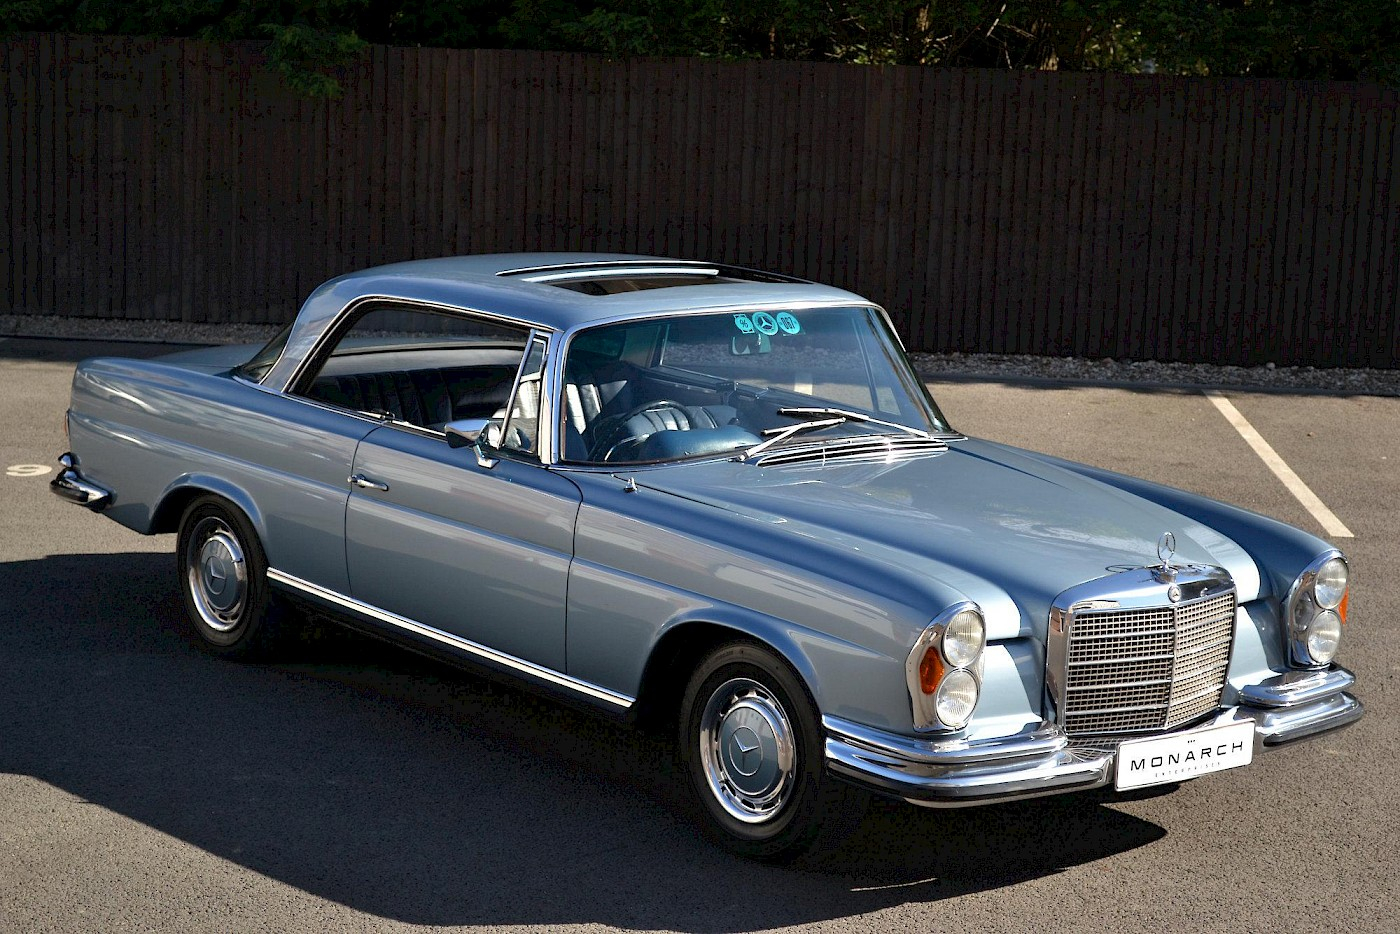 1971 RHD Mercedes-Benz 280 SE 3.5 V8 Coupe 1